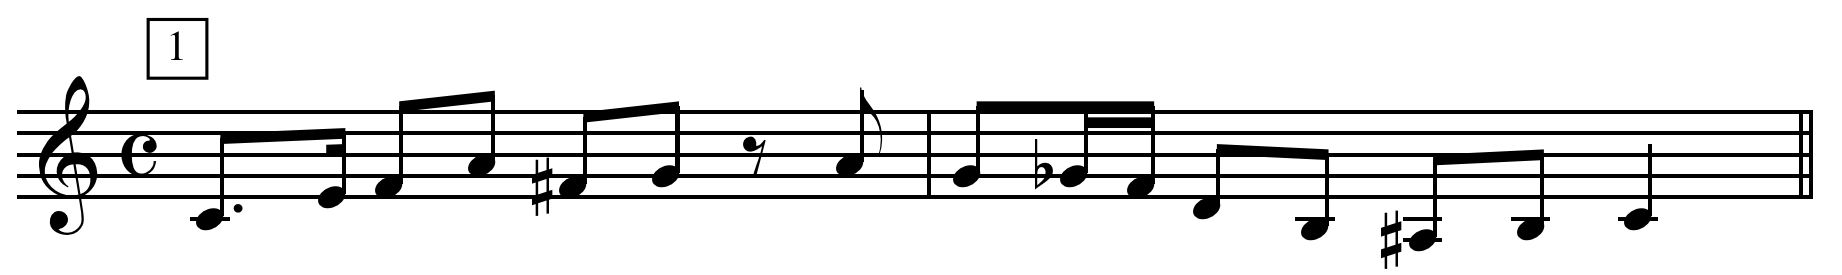 Music Theory/Finding the Key and Mode of a Piece